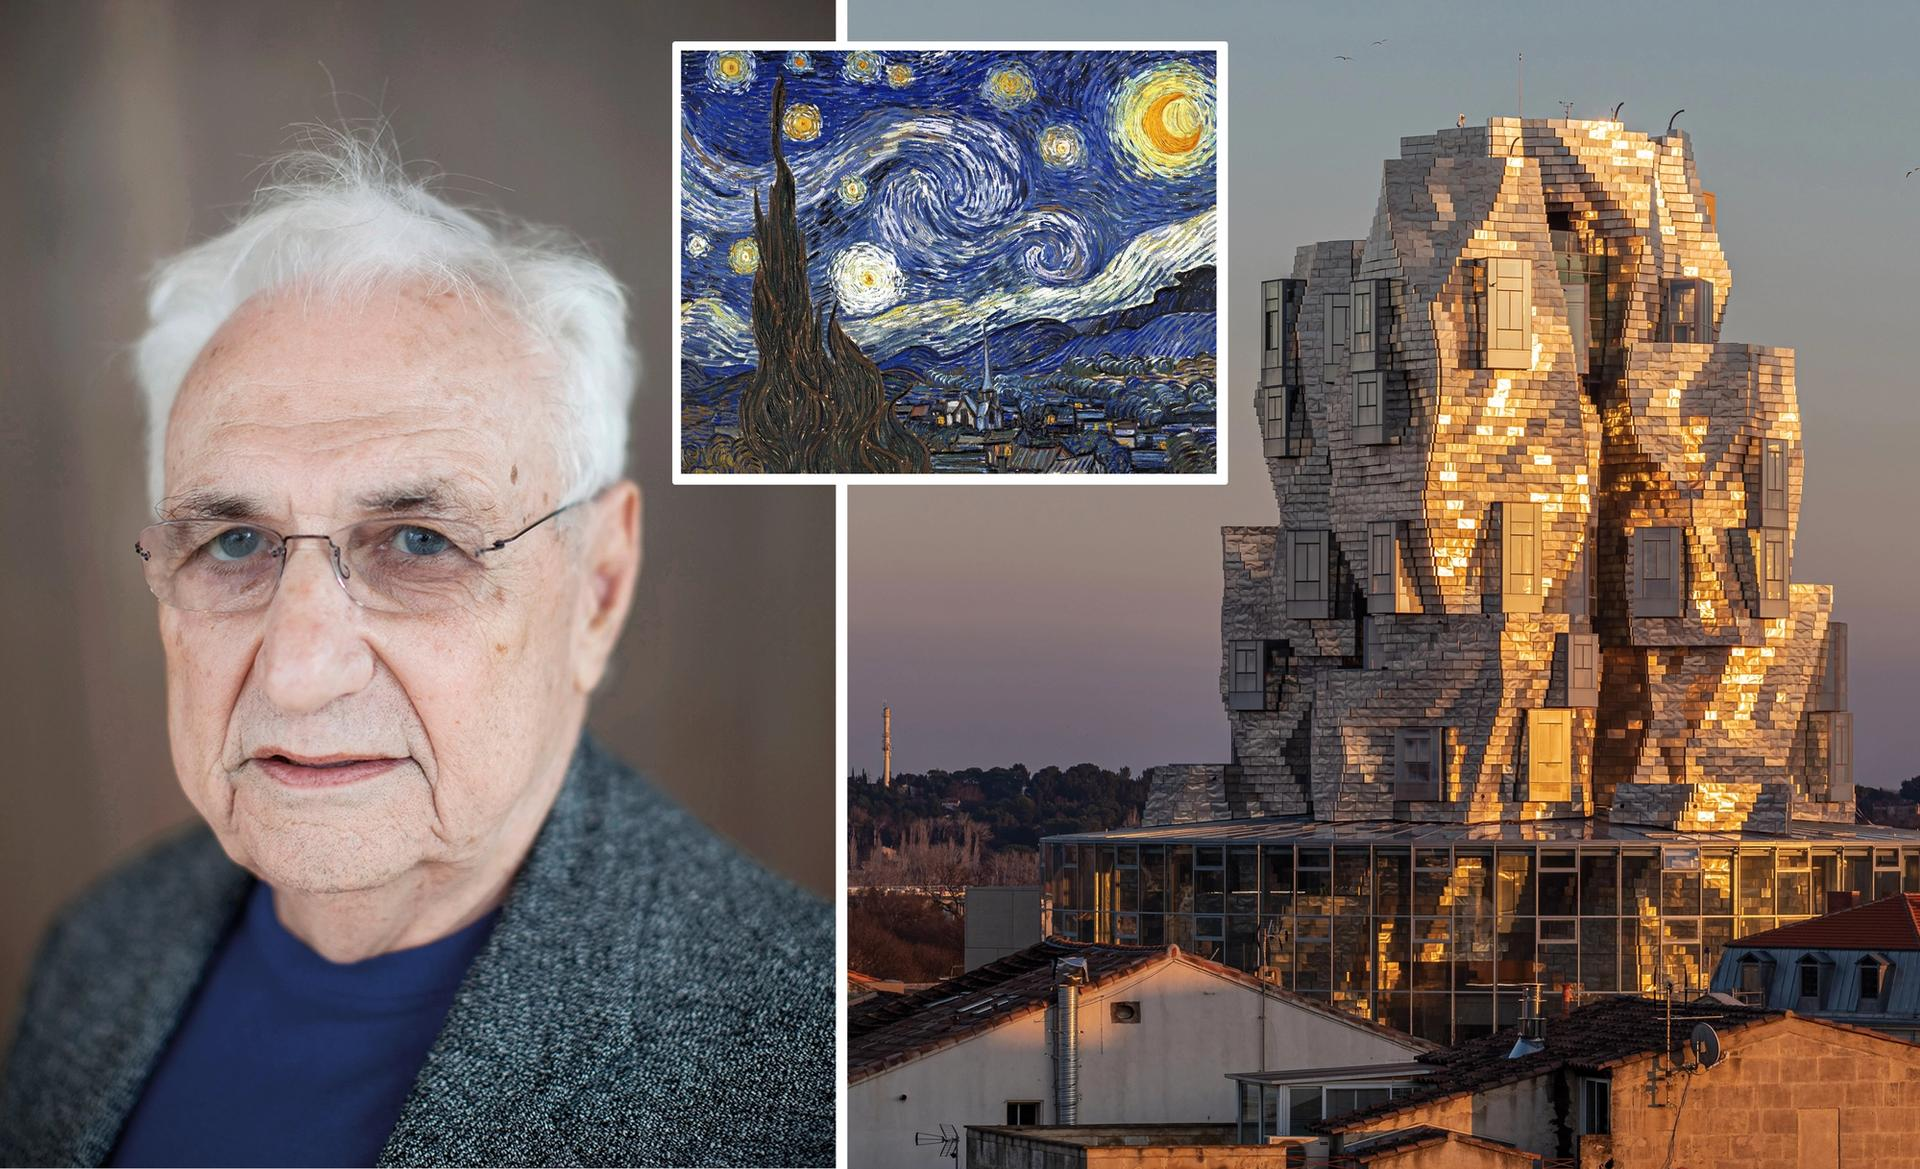 """""""My own art history and sense of Van Gogh's presence in Arles was always in the back of my mind,"""" says Frank Gehry of his LUMA Arles design Gehry: photo by Jerome Favre/Bloomberg via Getty Images; LUMA Arles: photo by Adrian Deweerdt / Luma; Van Gogh: Starry Night (1889)"""